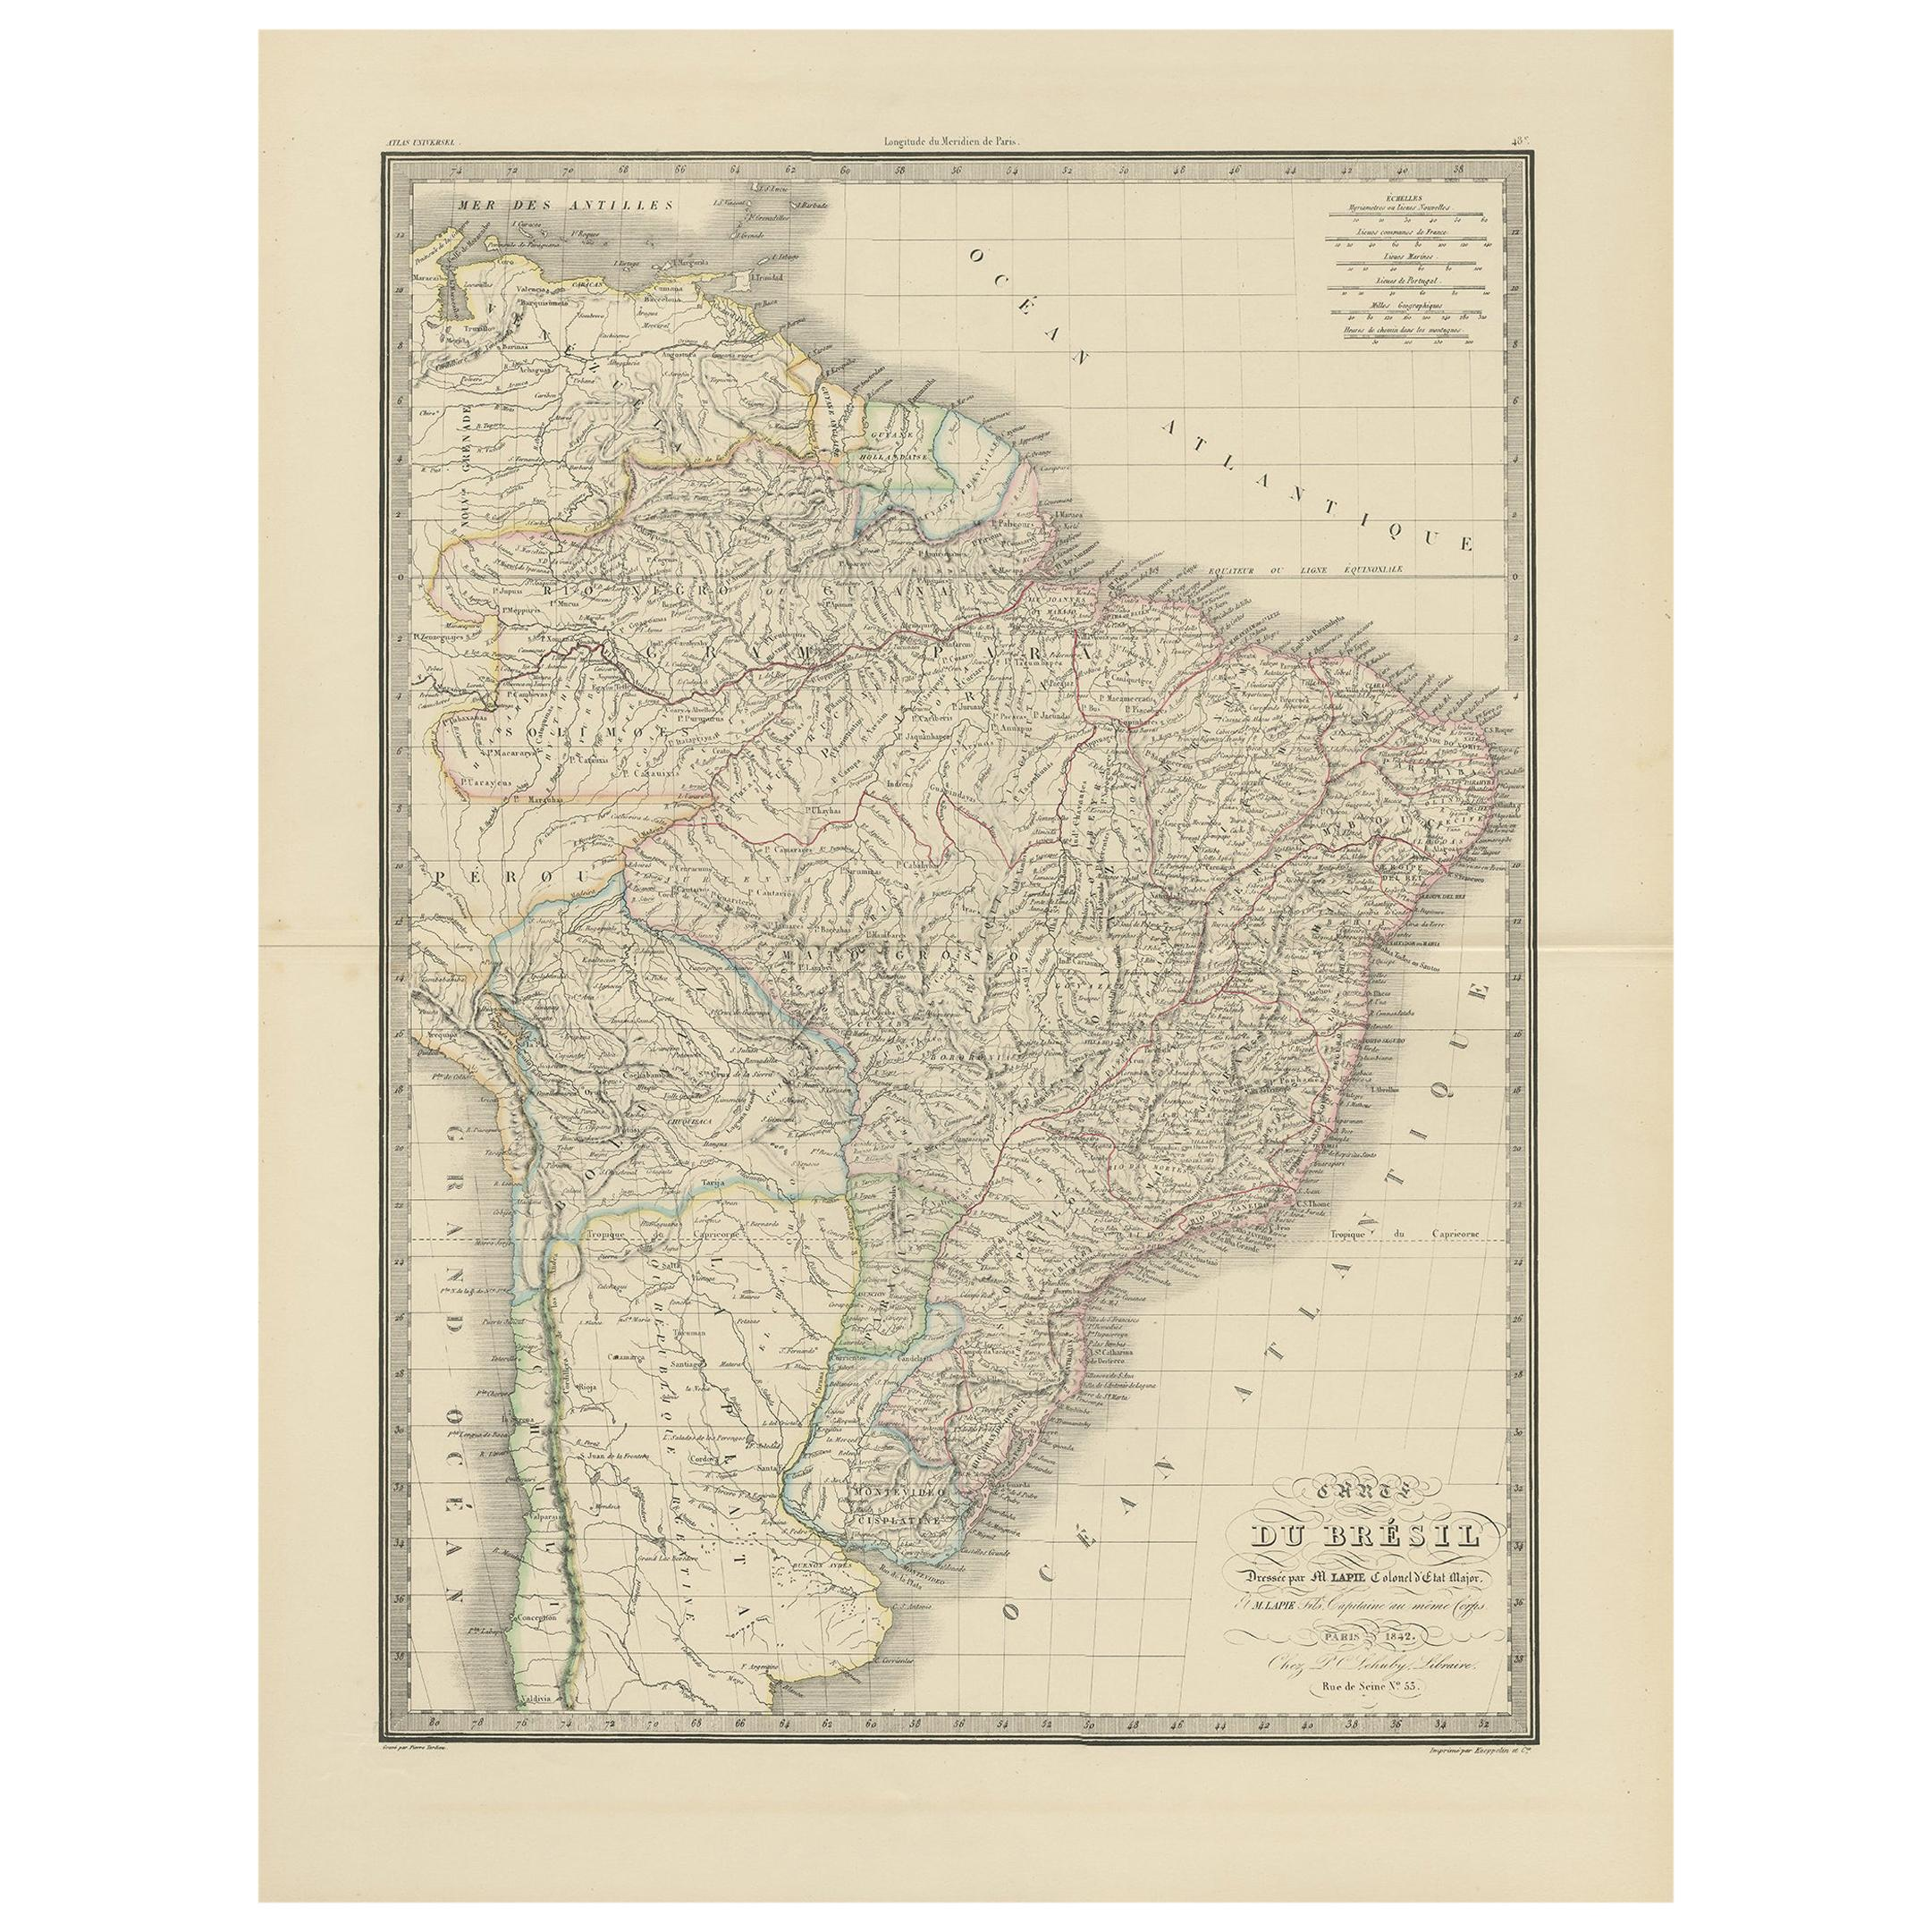 Antique Map of Brazil by Lapie, 1842